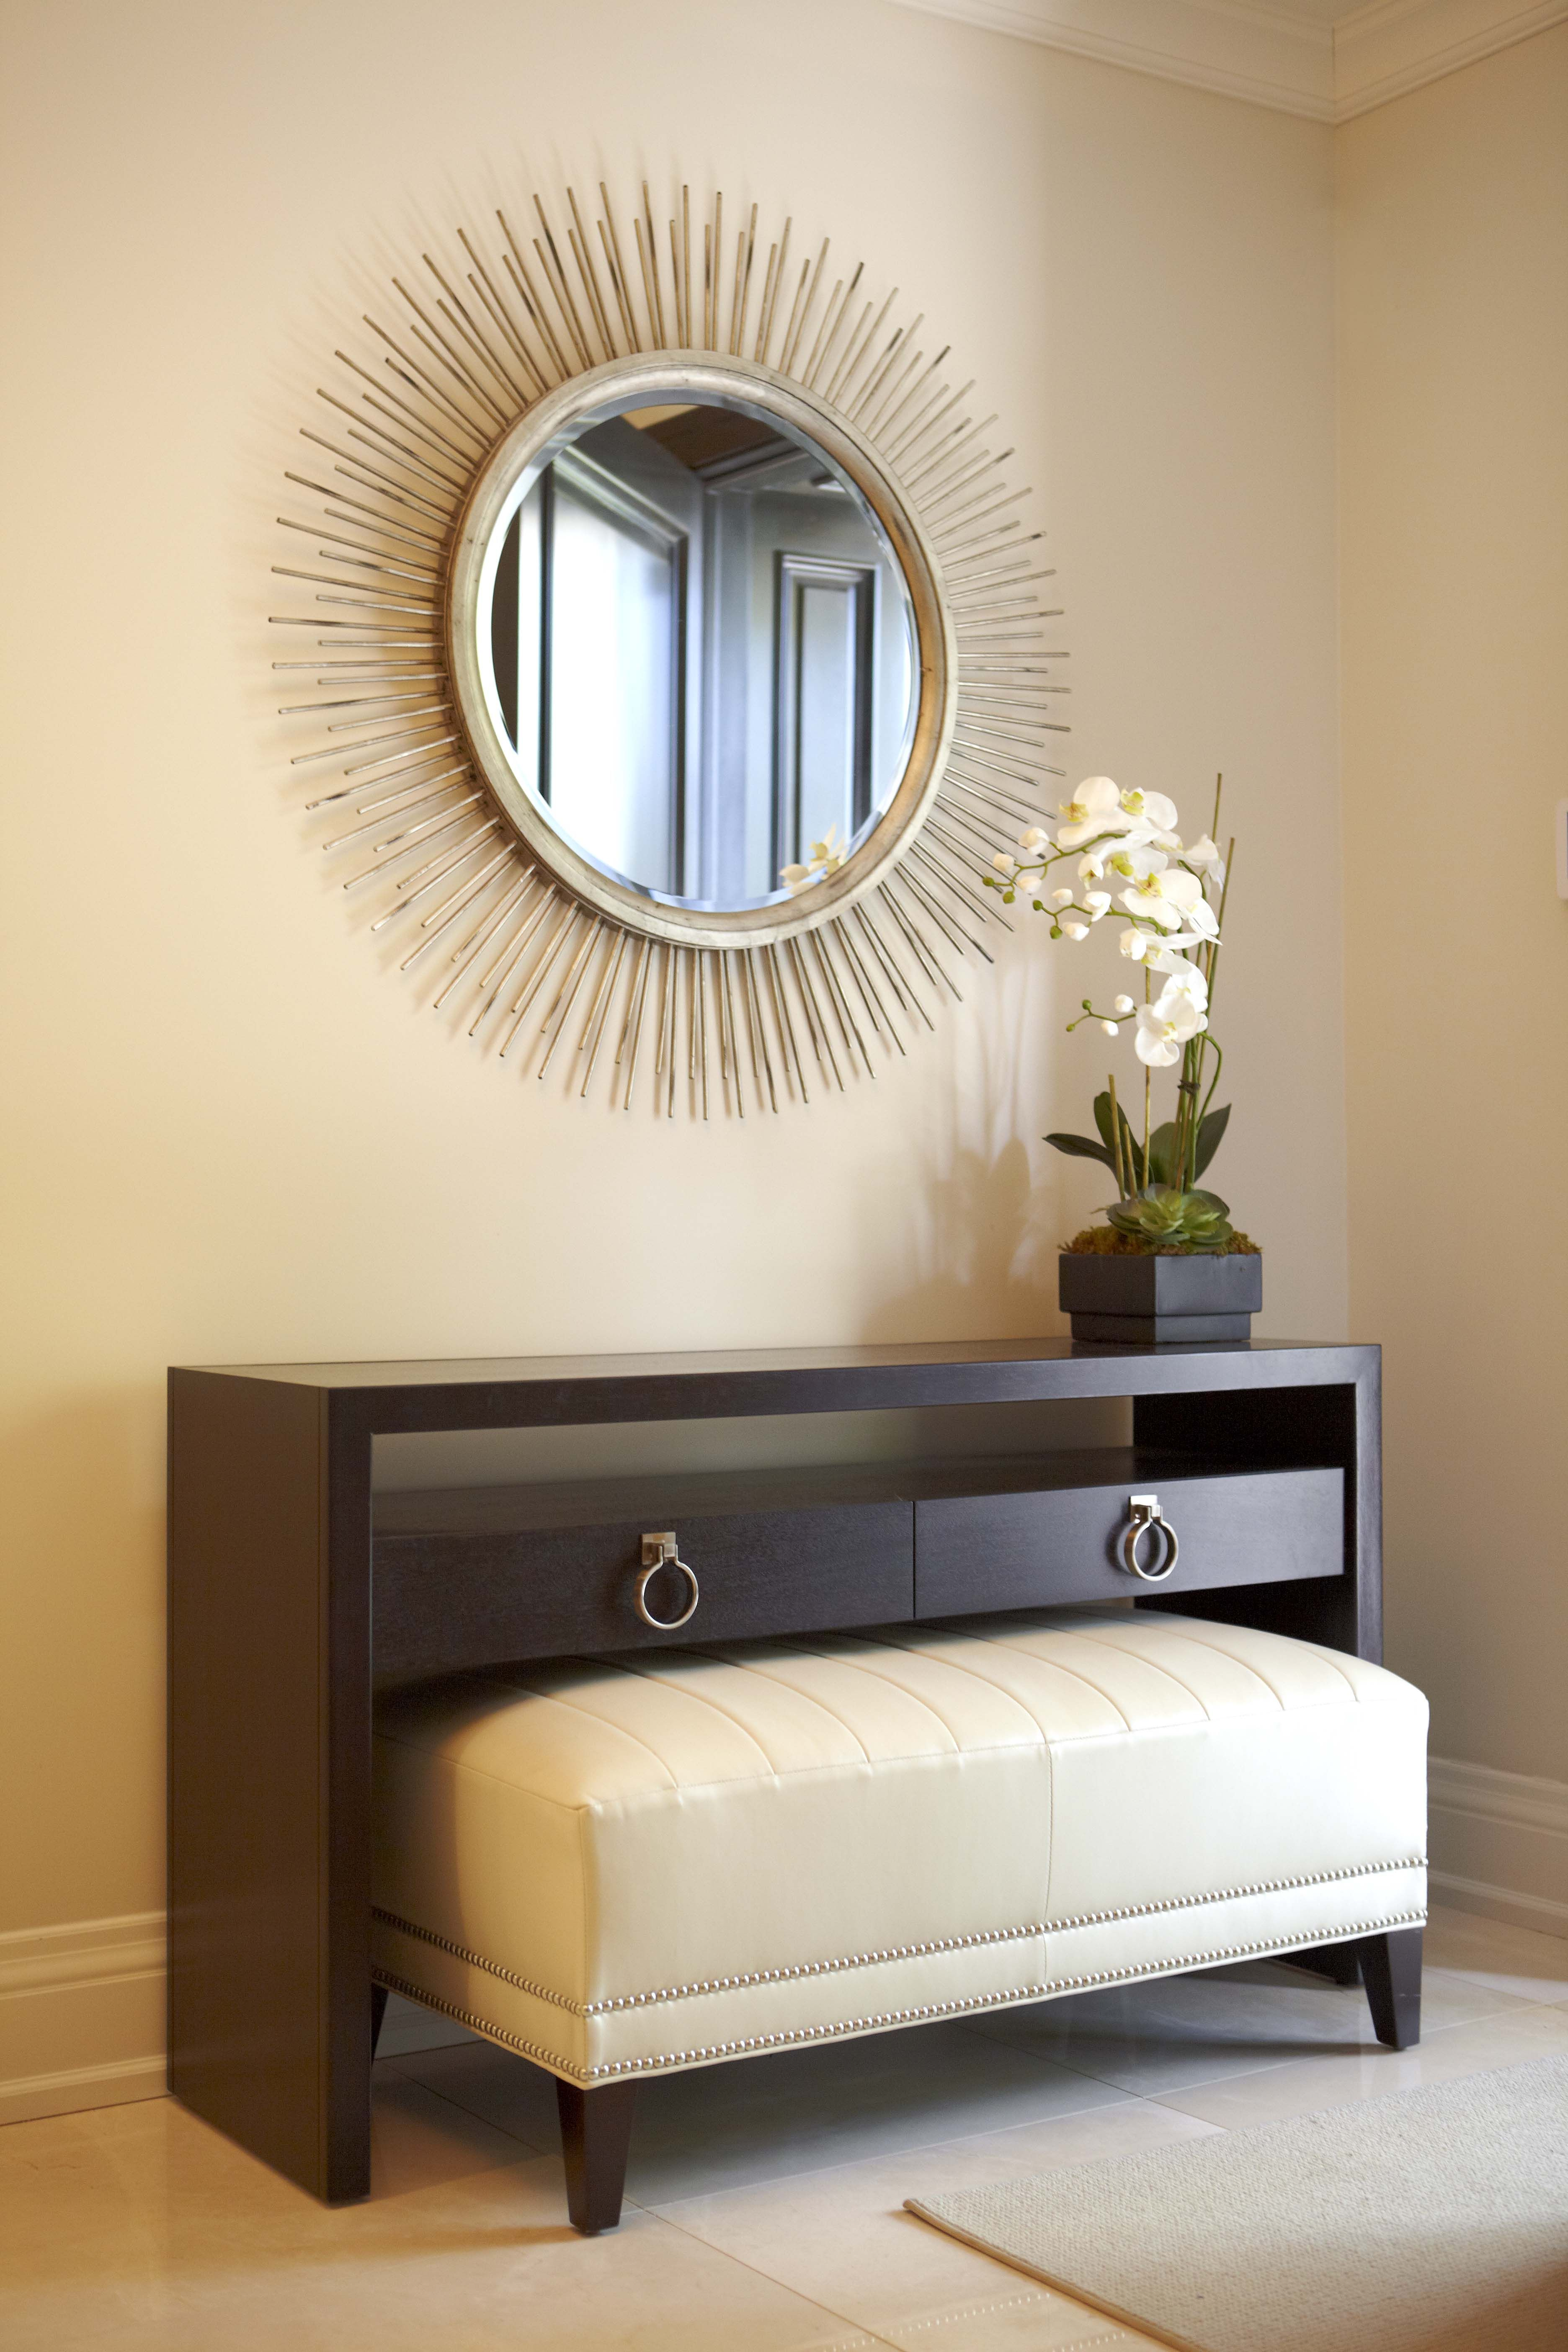 A Transitional Style Great Room By Parkyn Design Www Parkyndesign Com: Pin By Parkyn Design On Kingsway Revival